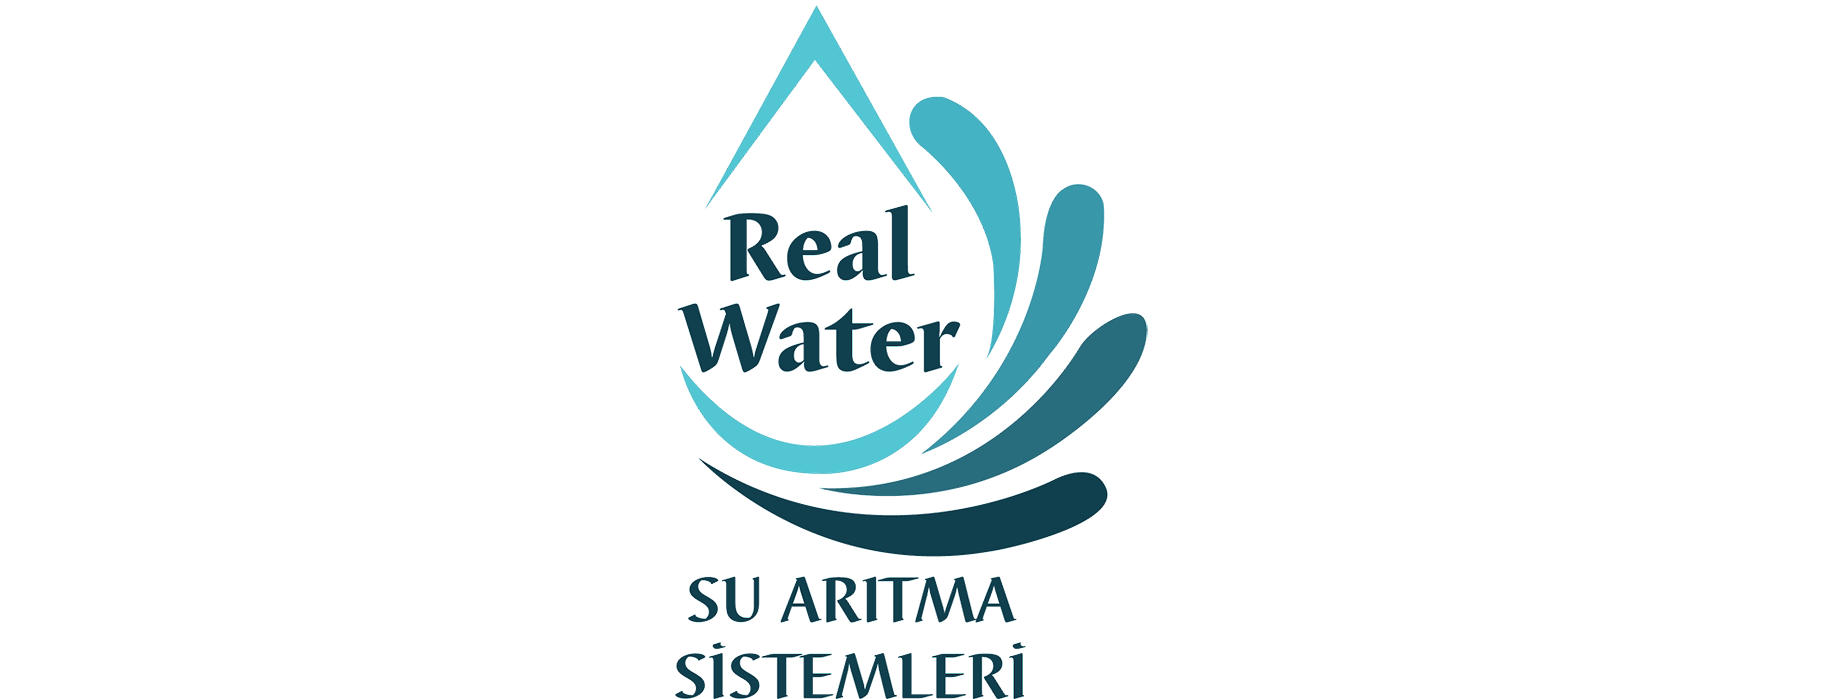 RealWater